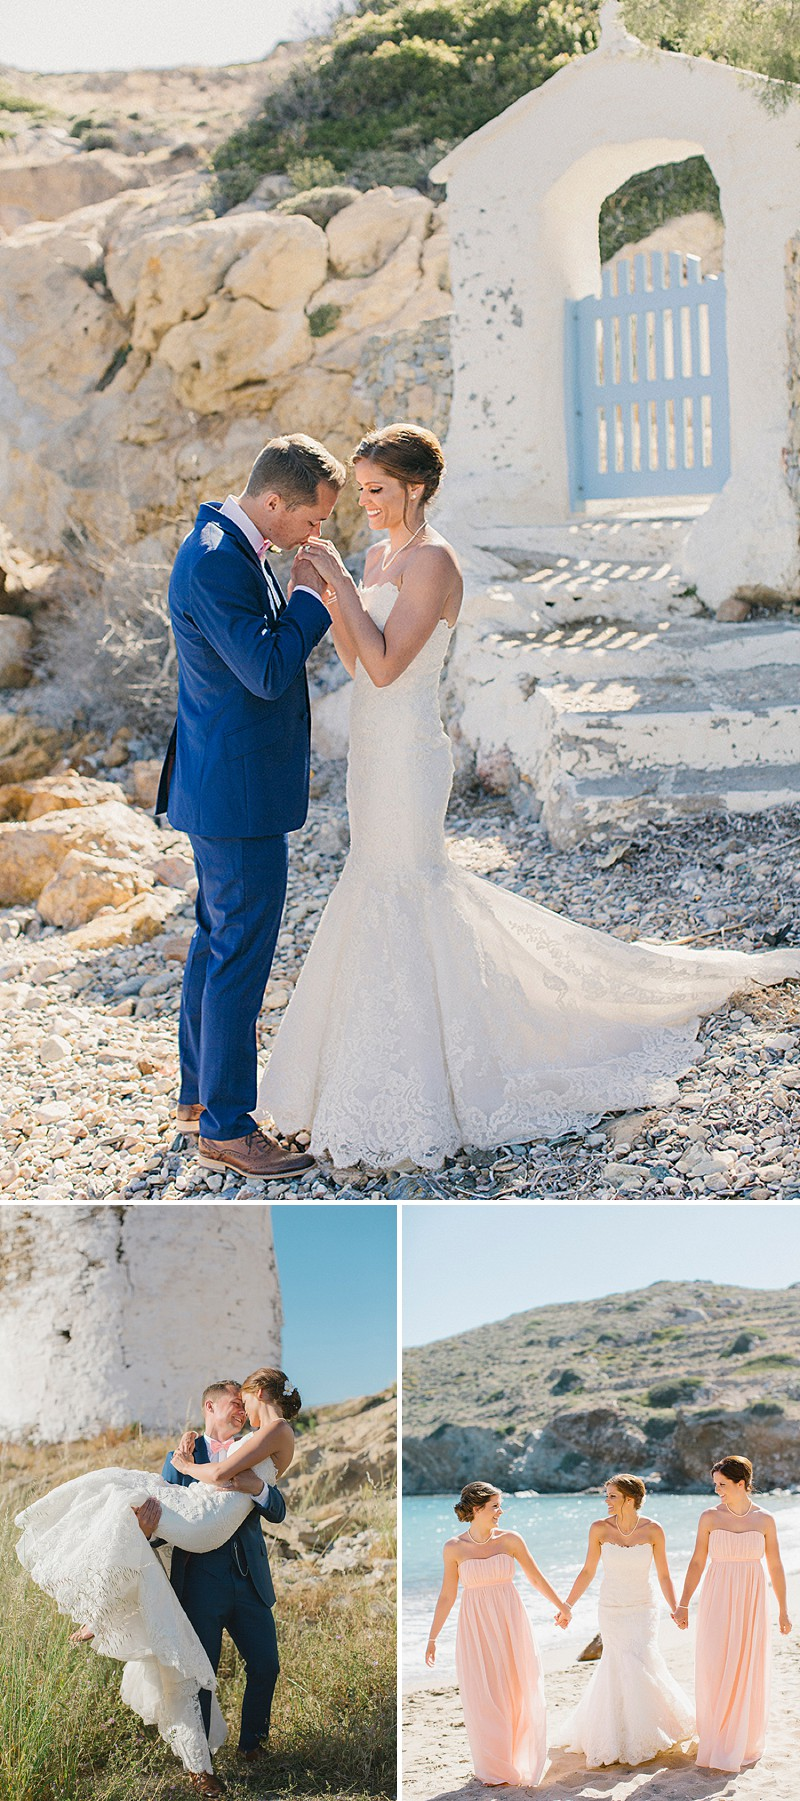 A Greek Destination Wedding On Tzamaria Beach In iOS With A Enzoani Dress And Peach Bridesmaid Dresses With Photography By Anna Roussos._0006